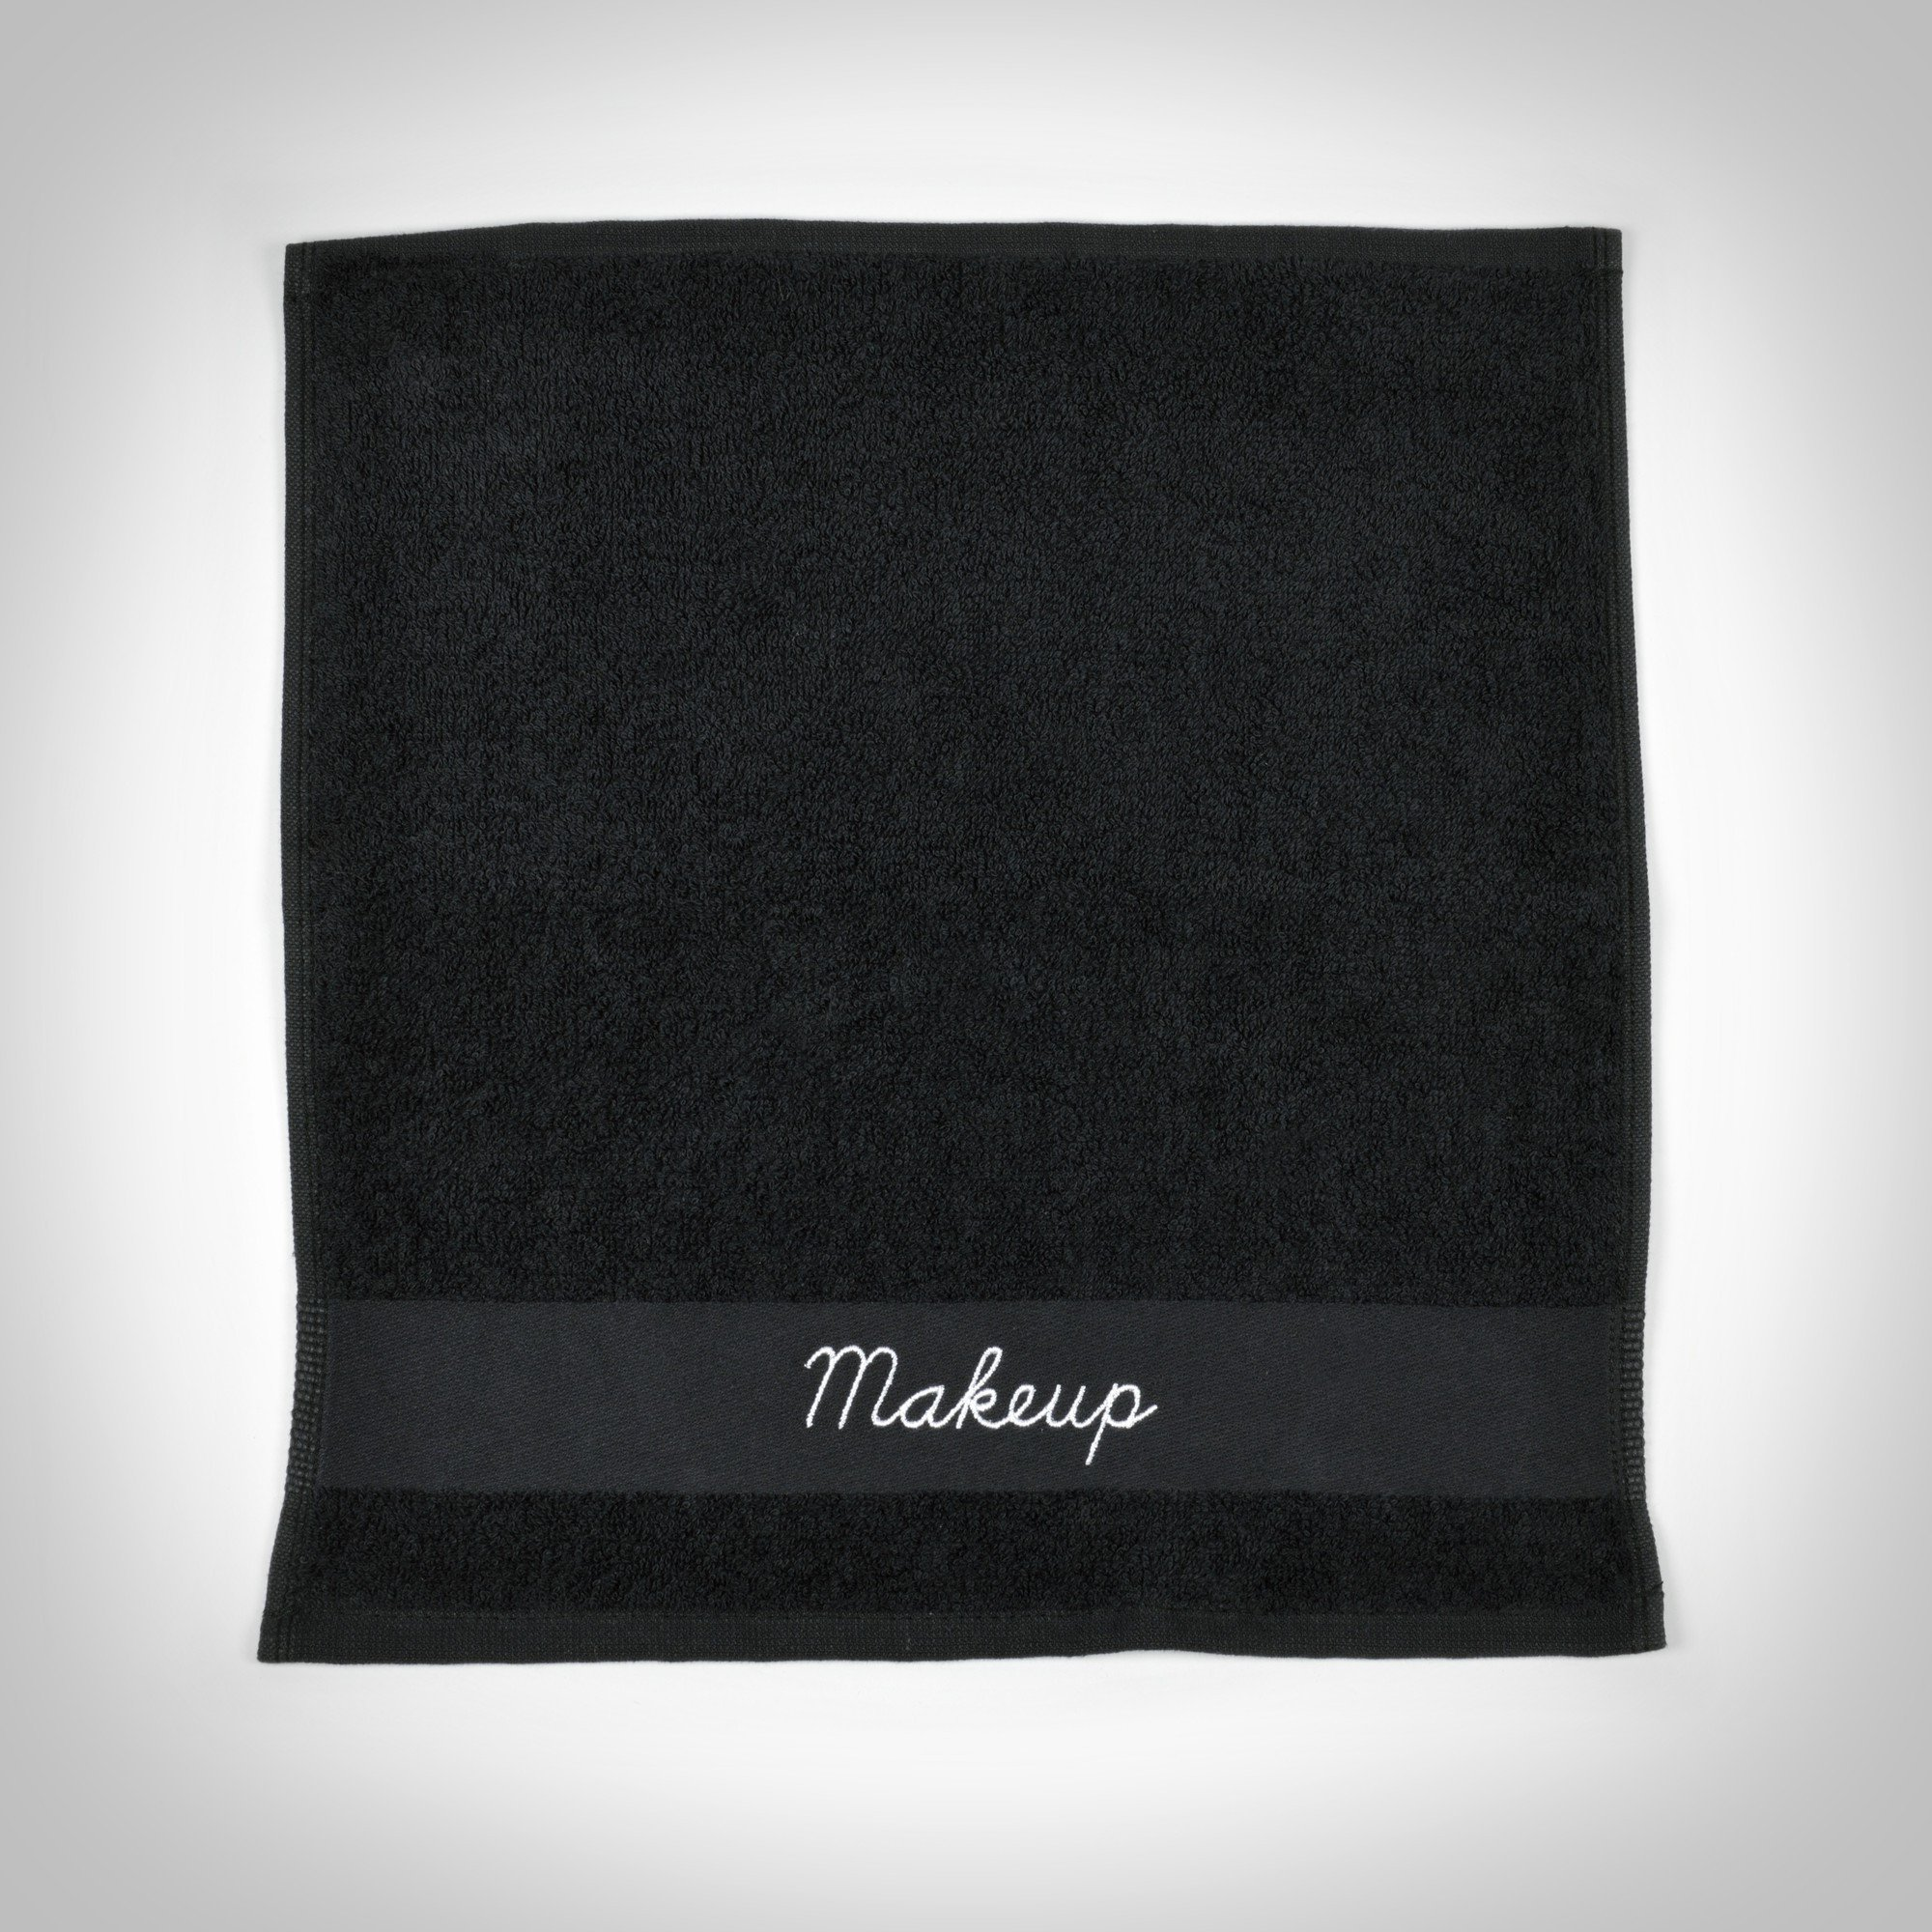 Makeup Towel Makeup towel, Towel, Makeup